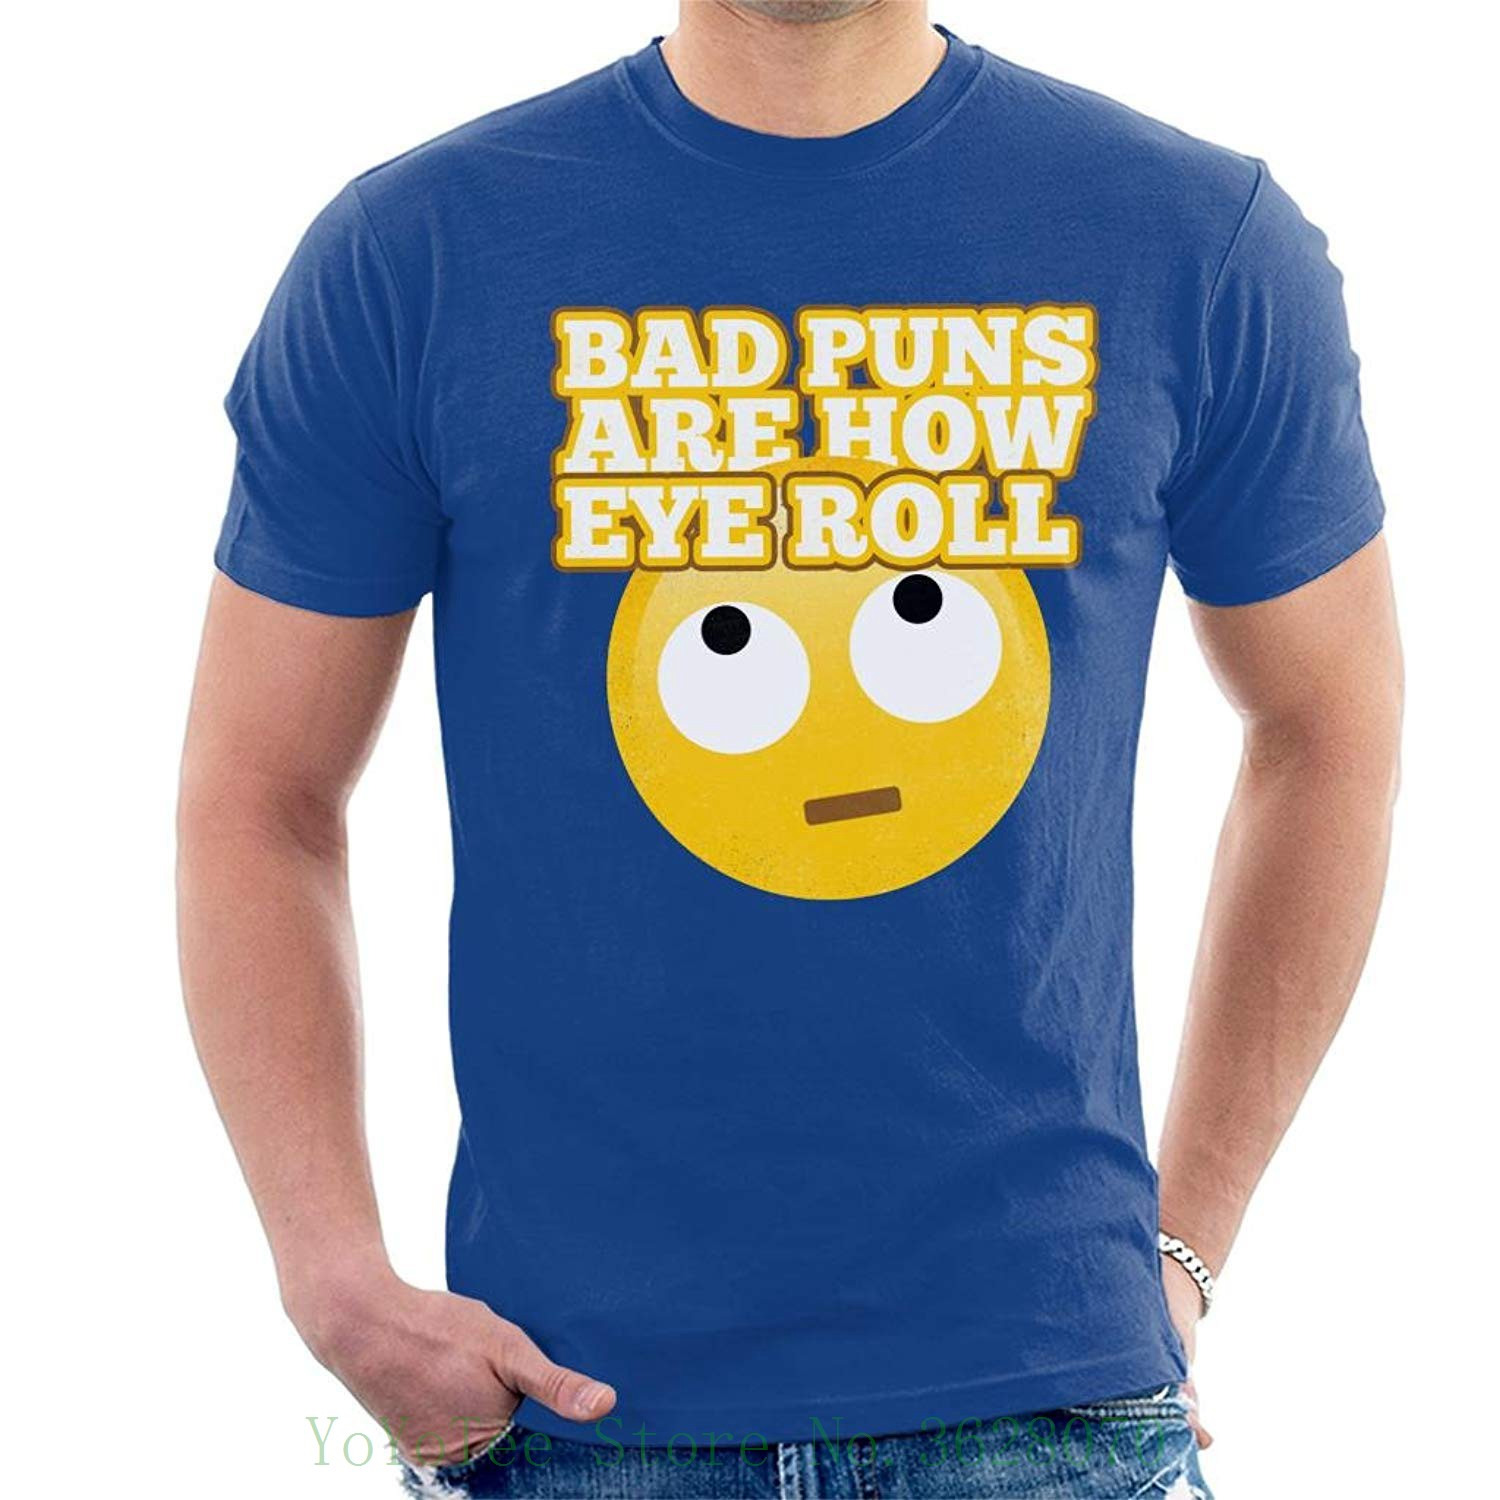 Bad Puns Are How Eye Roll Men's T-shirt T-shirt Casual Short Sleeve For Men  Clothing Summer